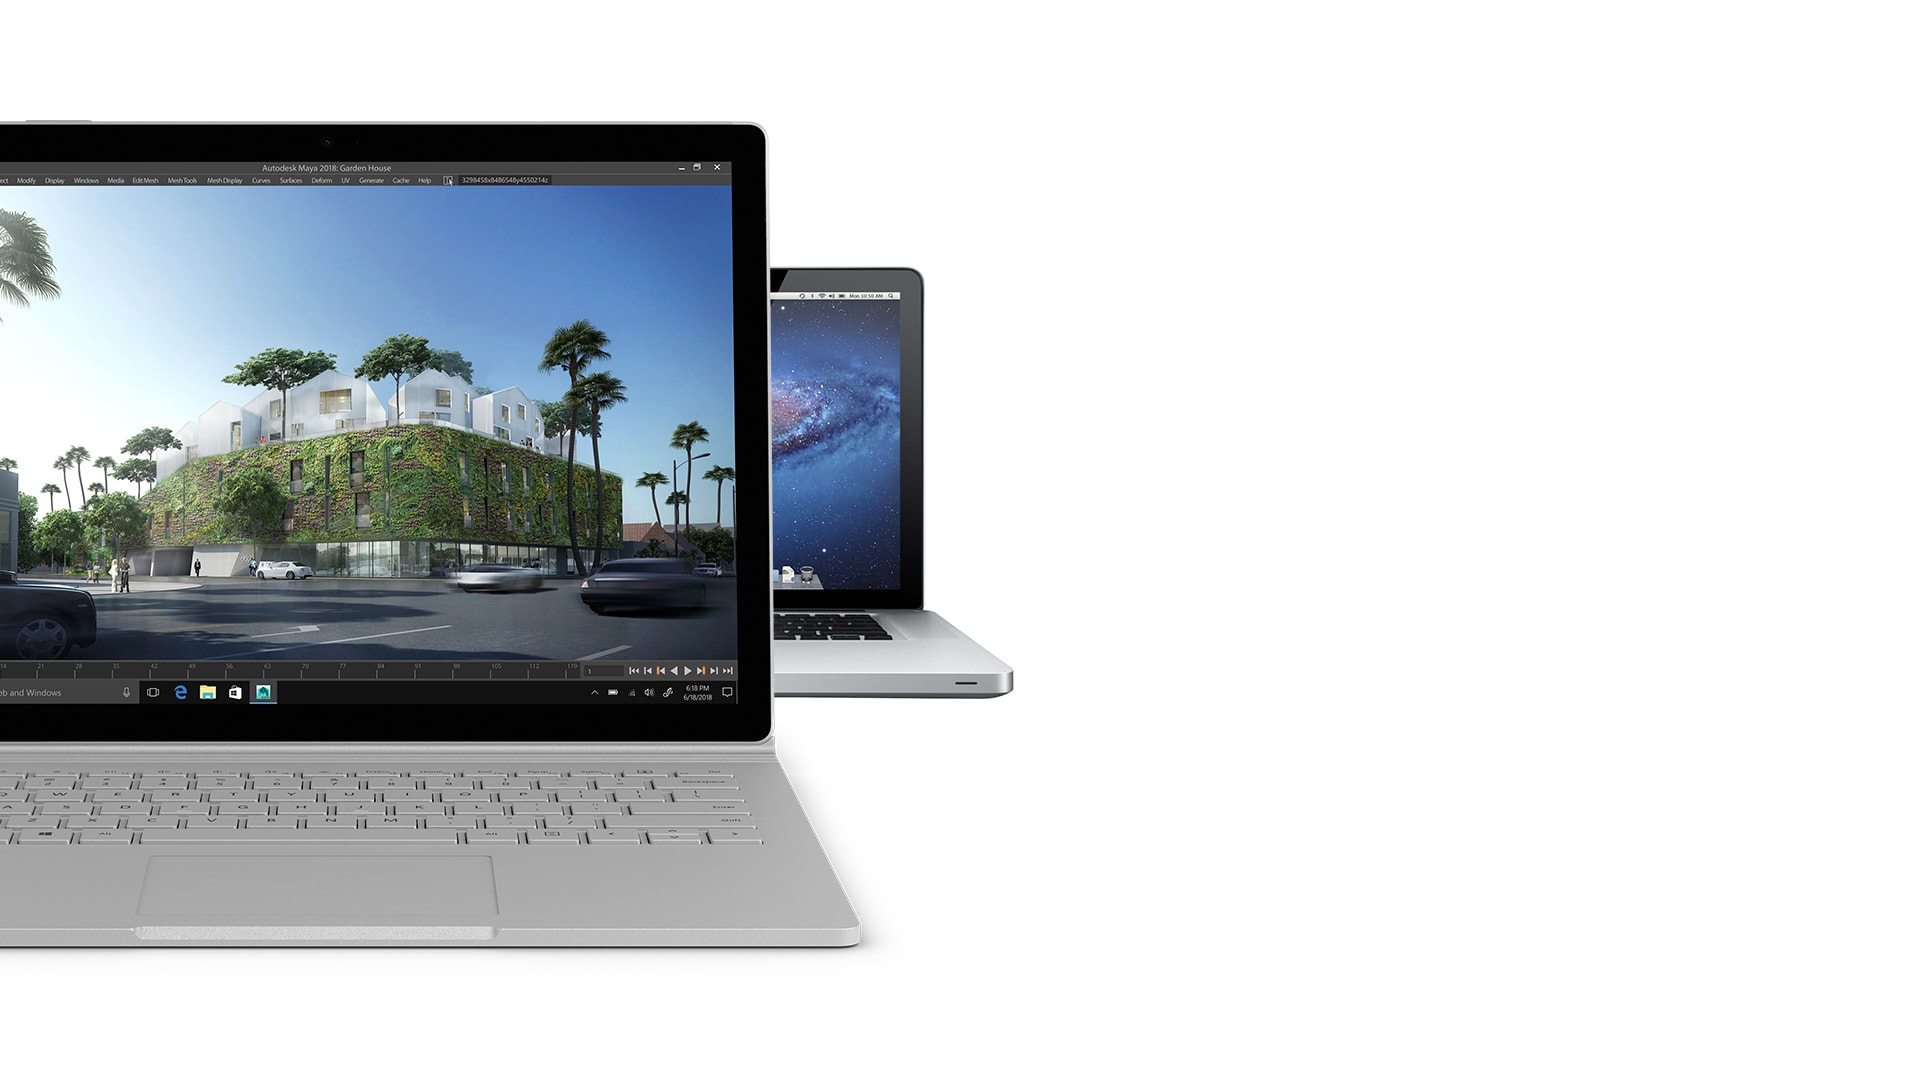 Surface Book 2 shown in front of MacBook Pro